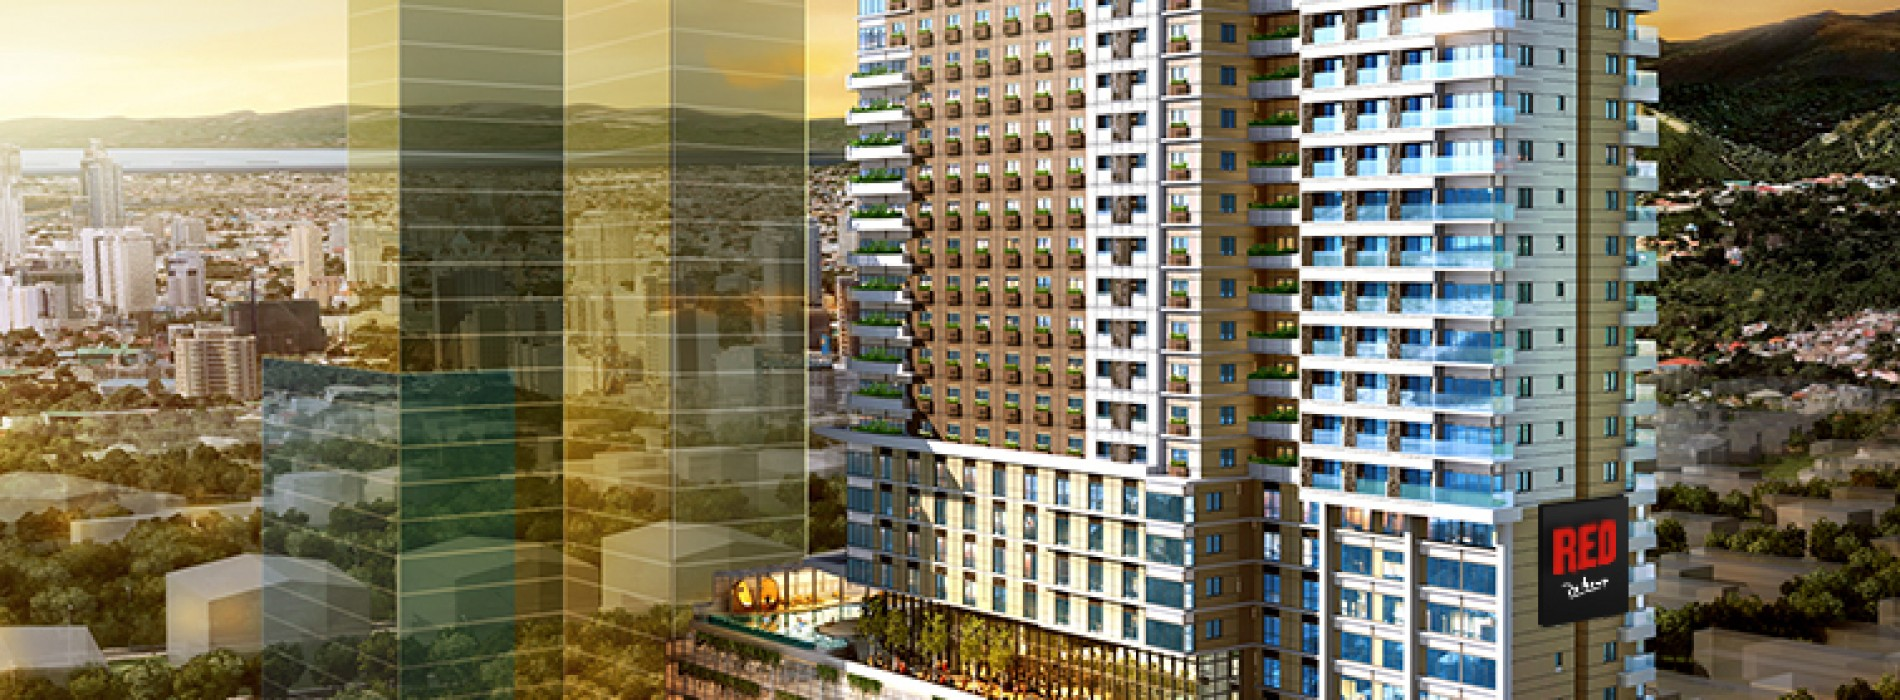 Radisson Hotel Group signs new property in Philippines